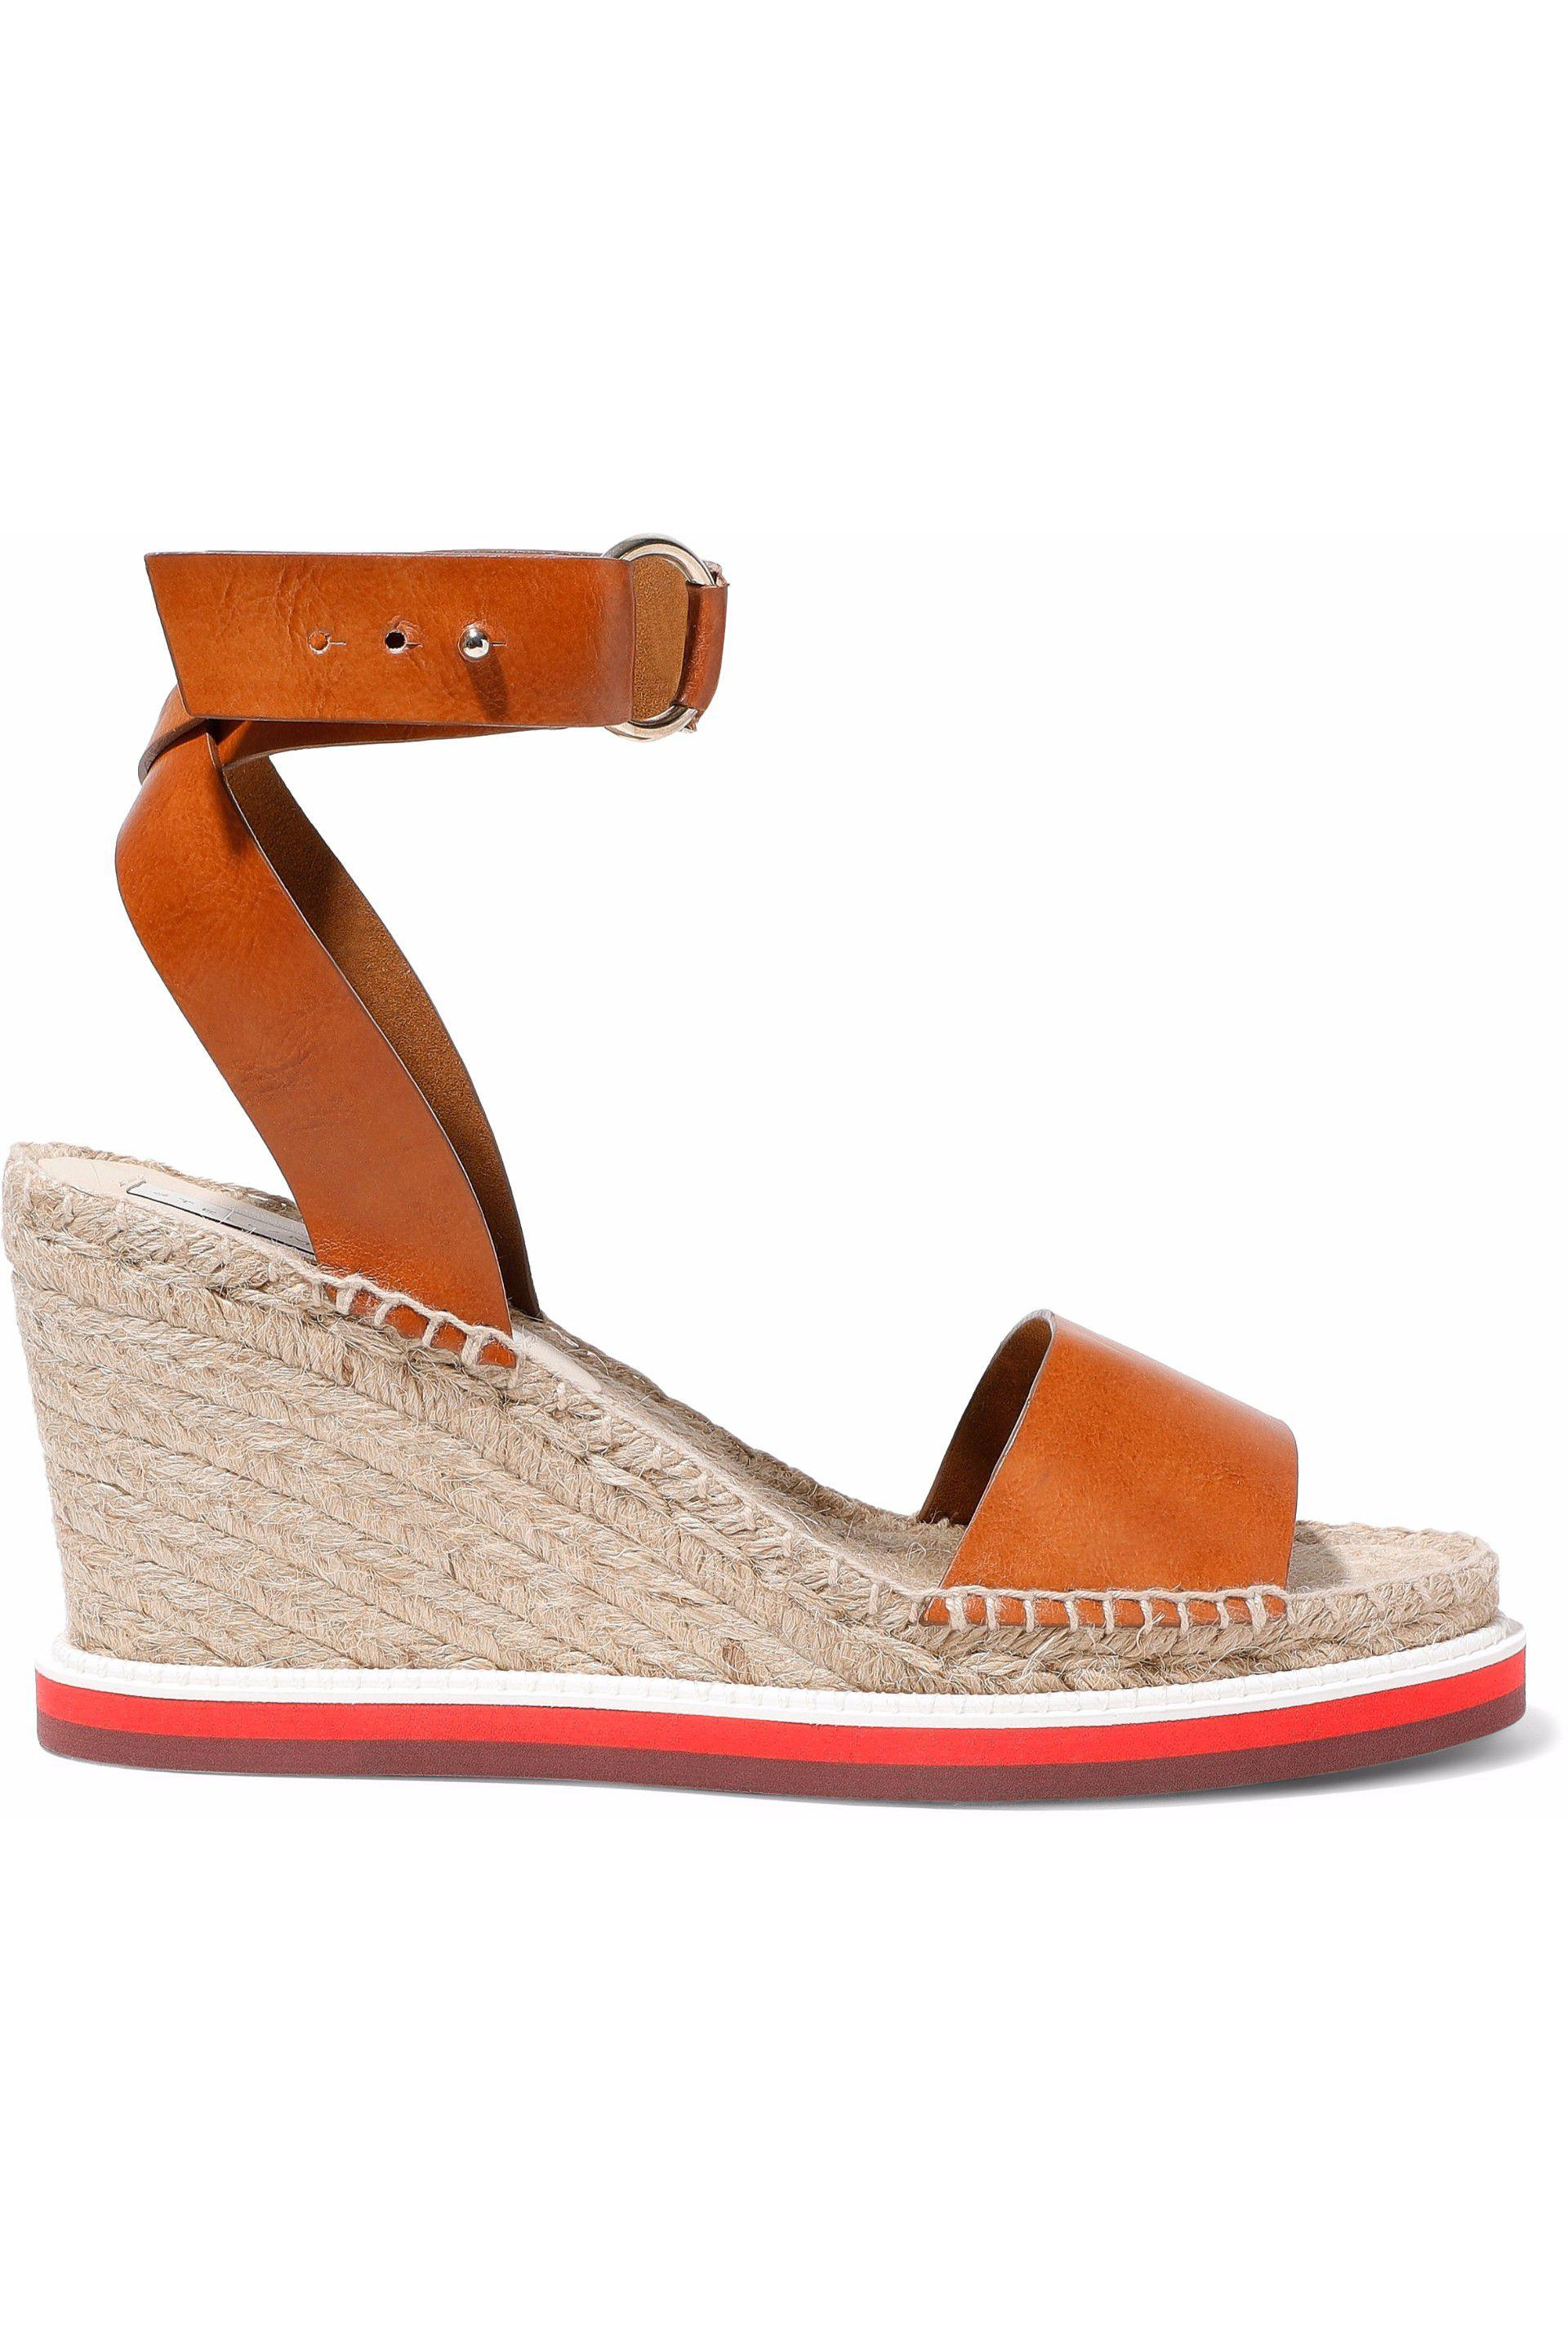 0e9ead108 Lyst - Stella McCartney Faux Leather Espadrille Wedge Sandals in Brown